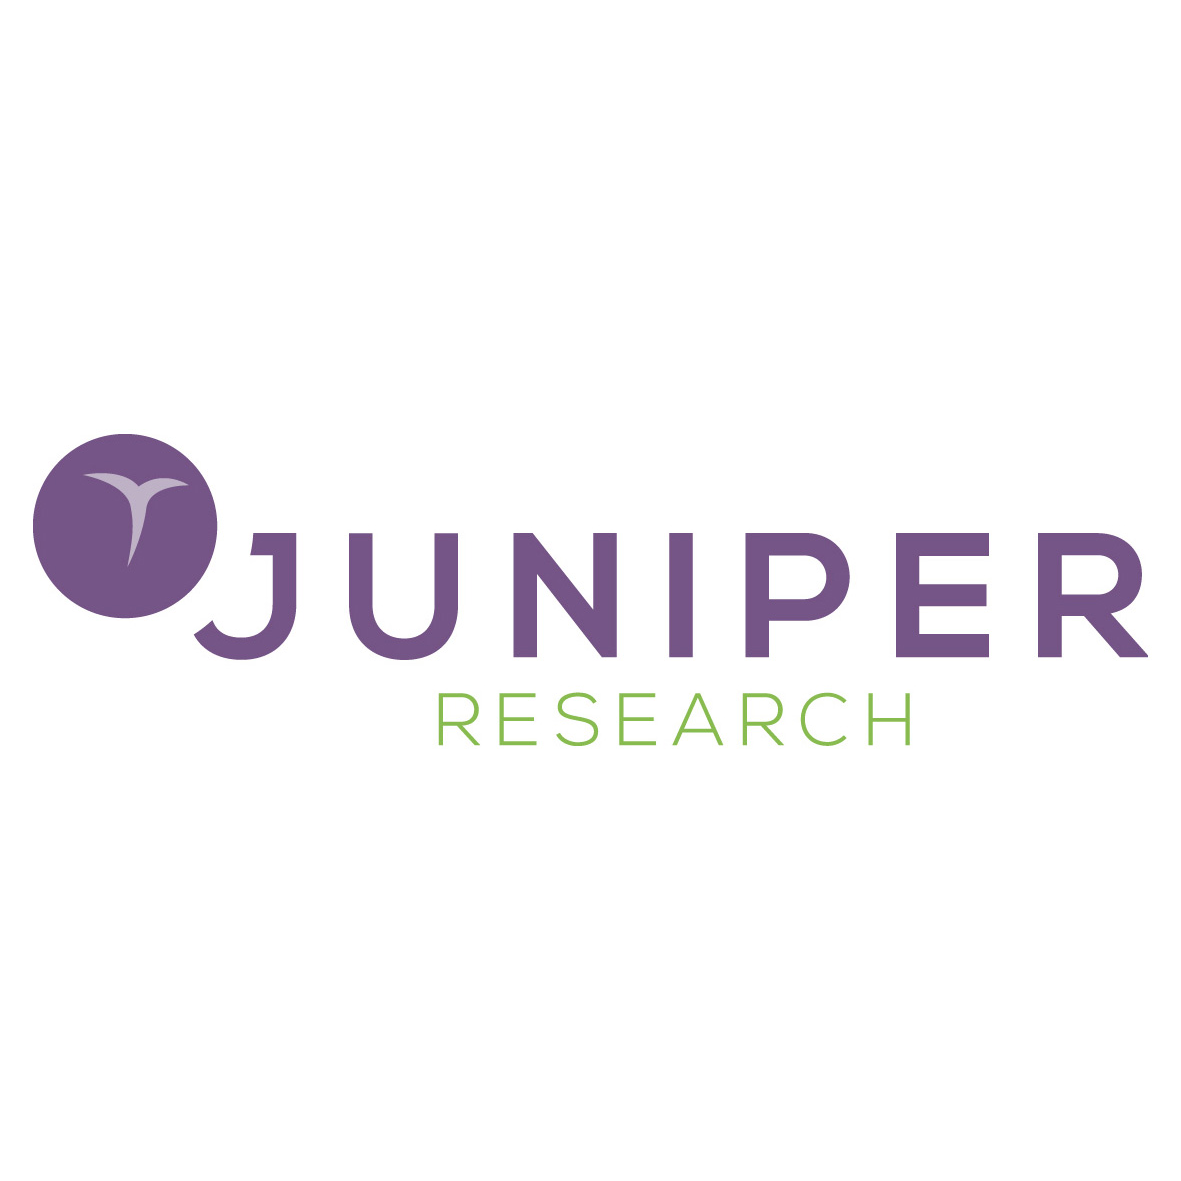 Juniper Research On Twitter Our First Category Is Smartwearables